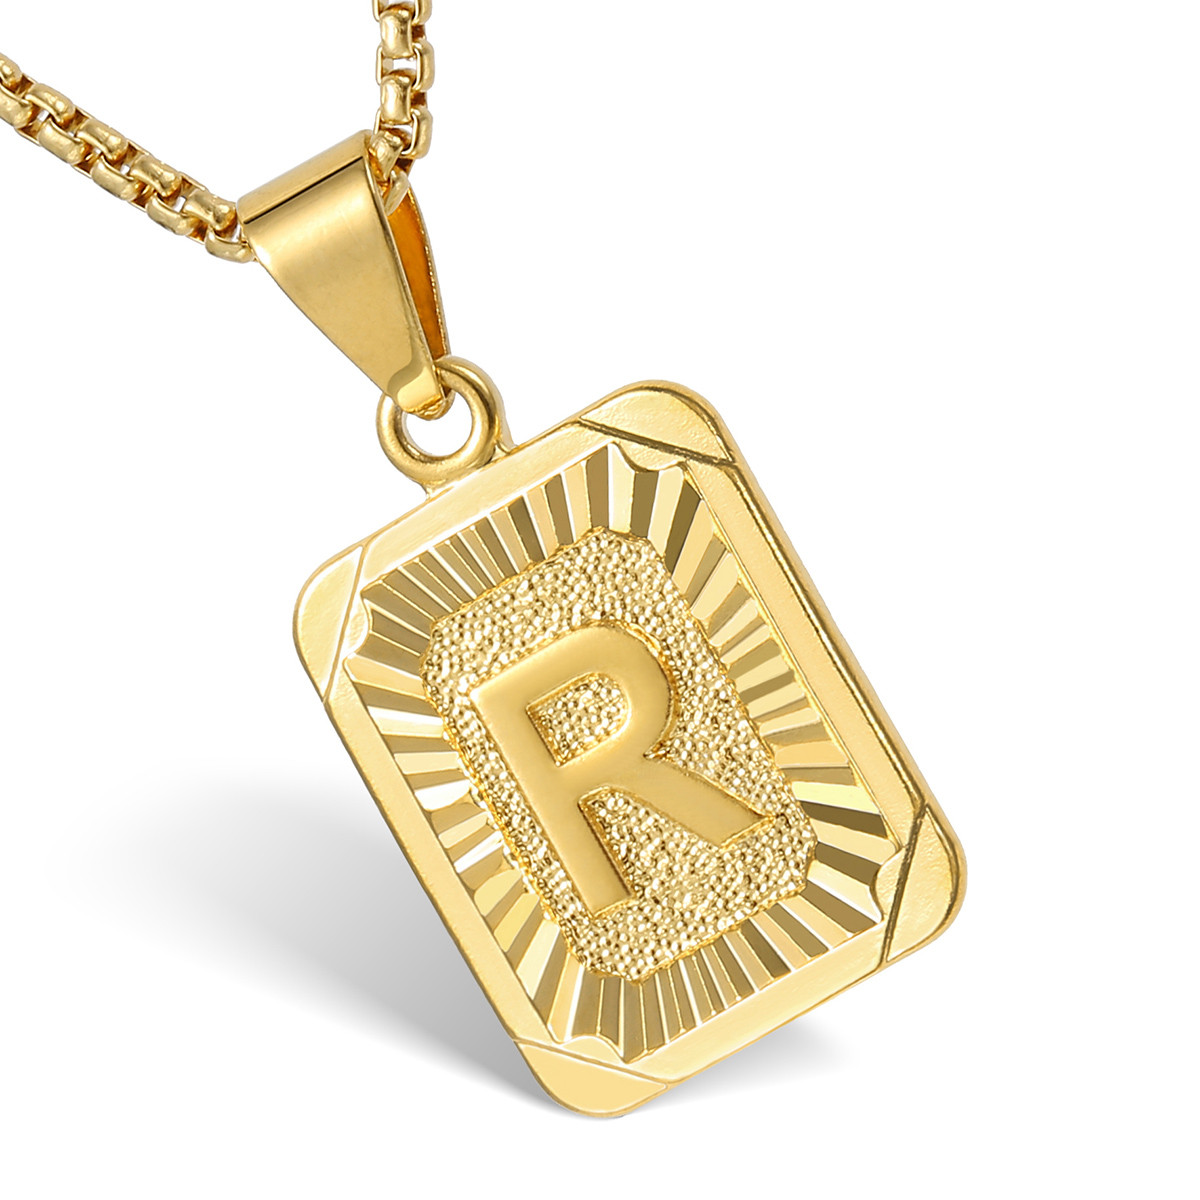 Mens women chain pendant necklace gold filled square initial letter mens women chain pendant necklace gold filled square mozeypictures Image collections